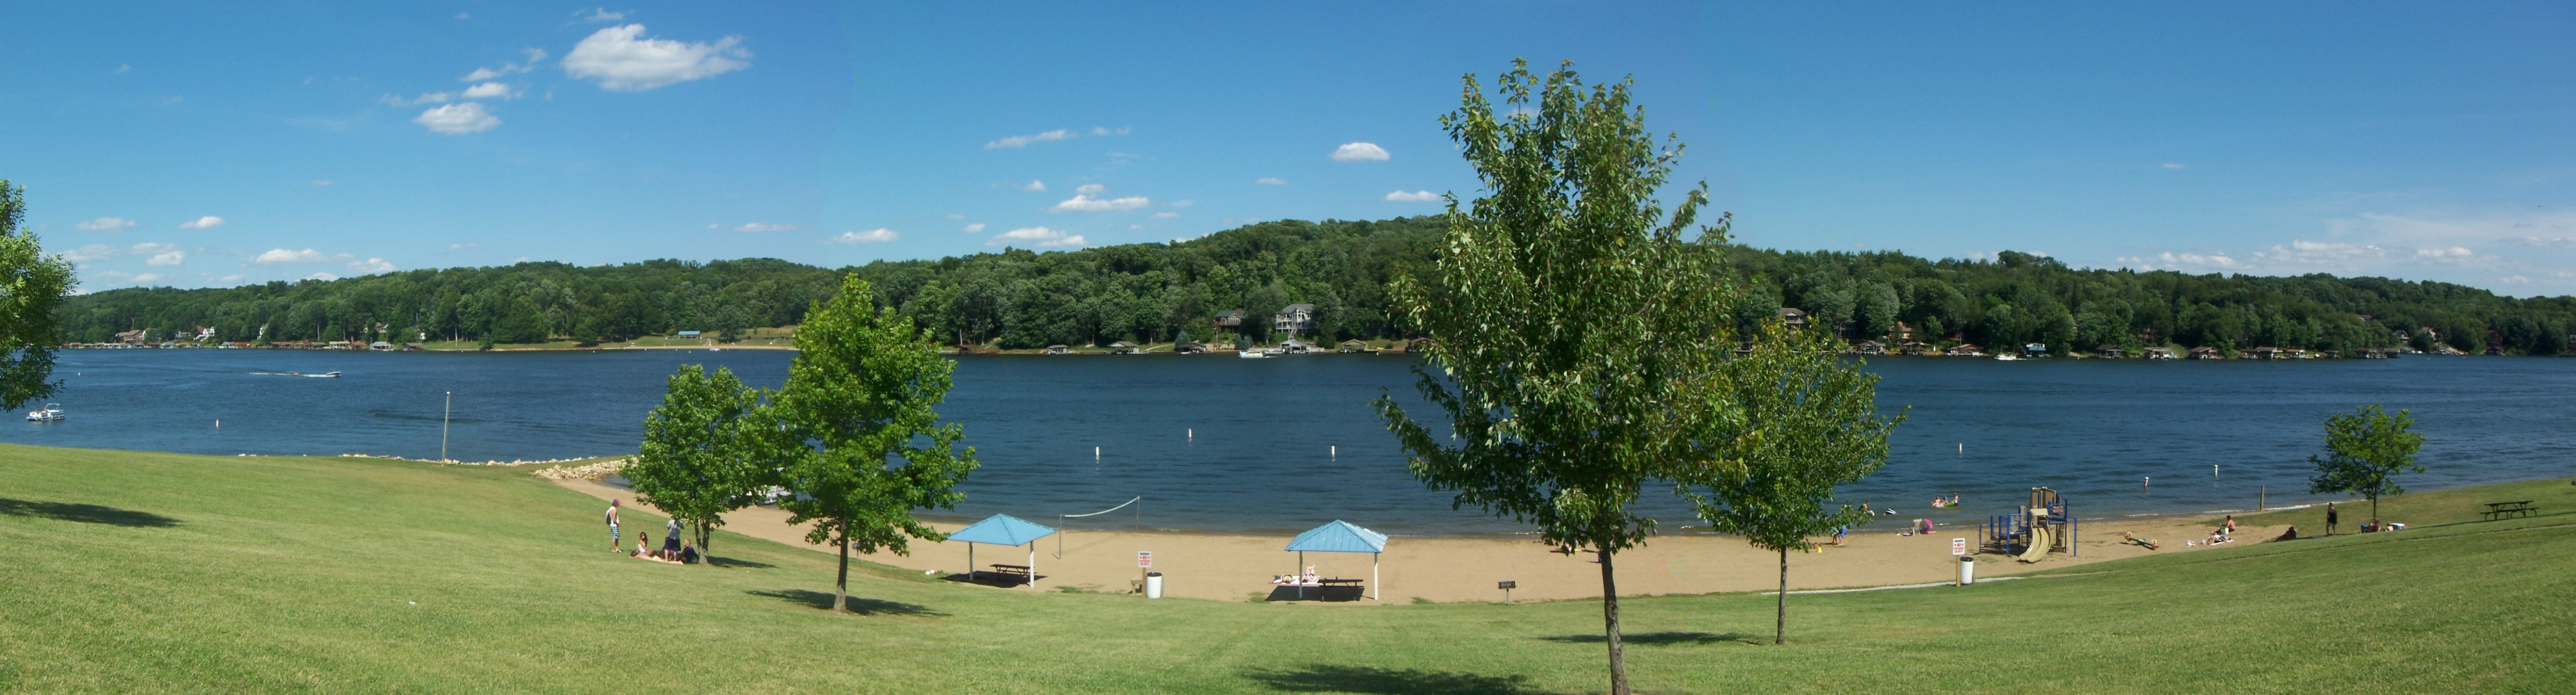 Apple Valley Lake Beach